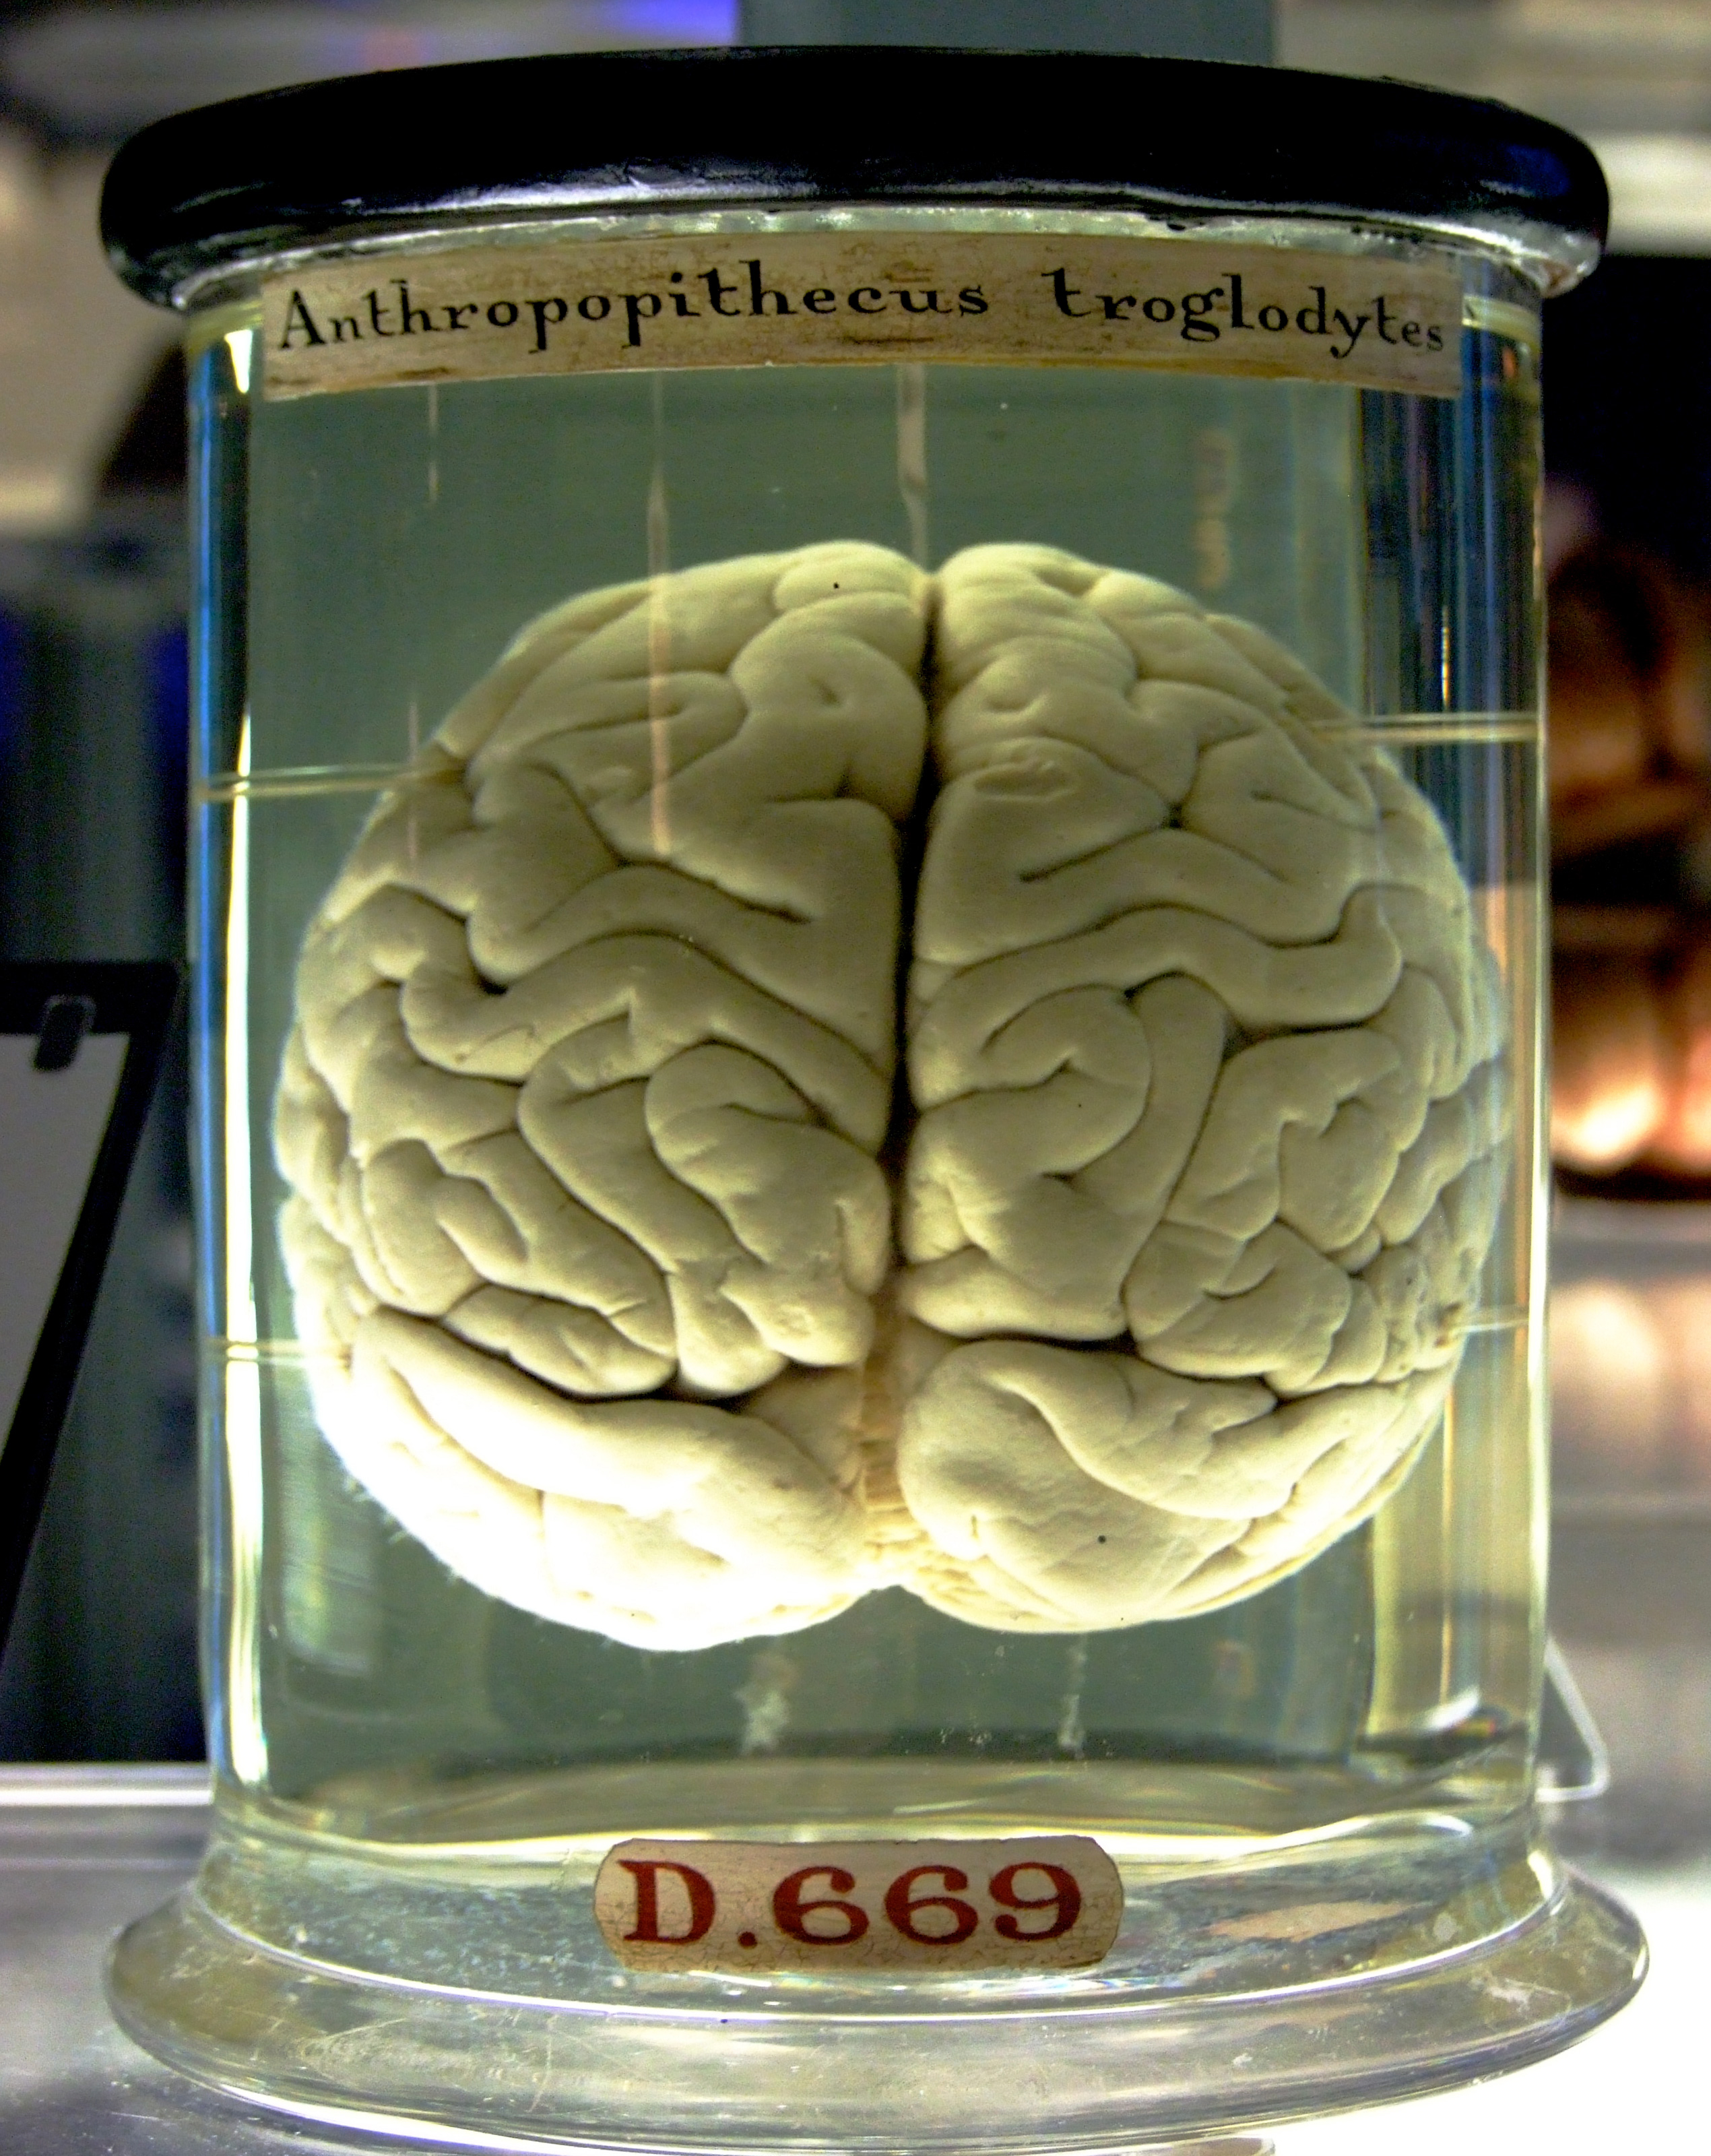 http://upload.wikimedia.org/wikipedia/commons/1/14/Chimp_Brain_in_a_jar.jpg